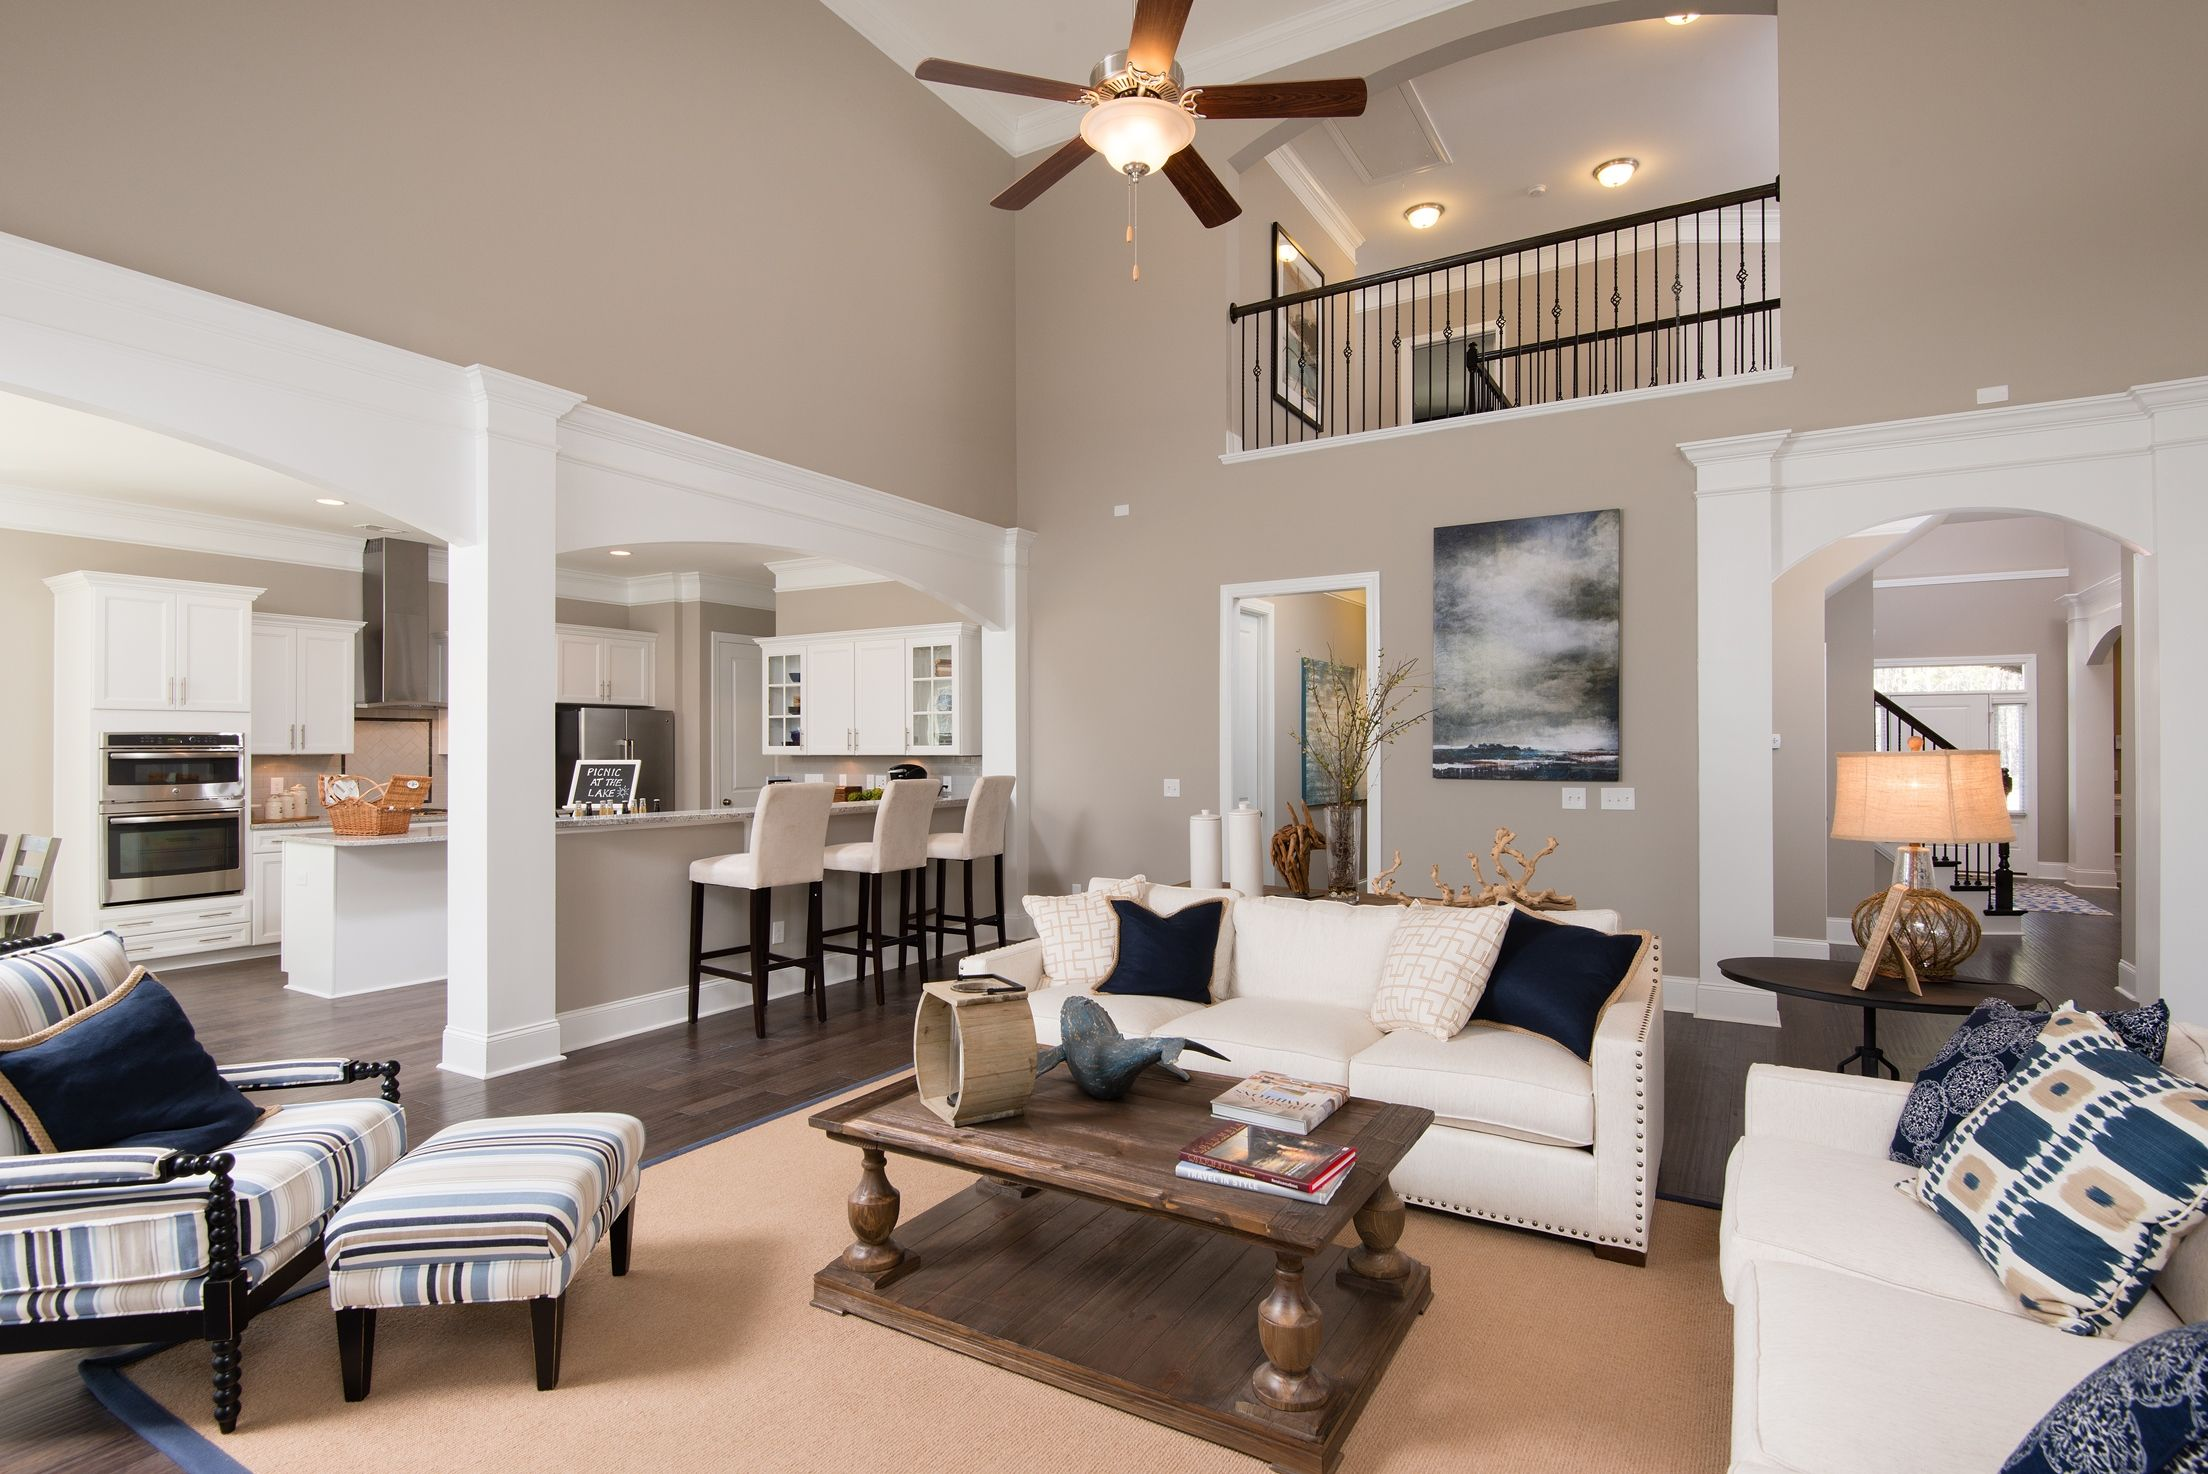 Another view of this great family room in our patterson